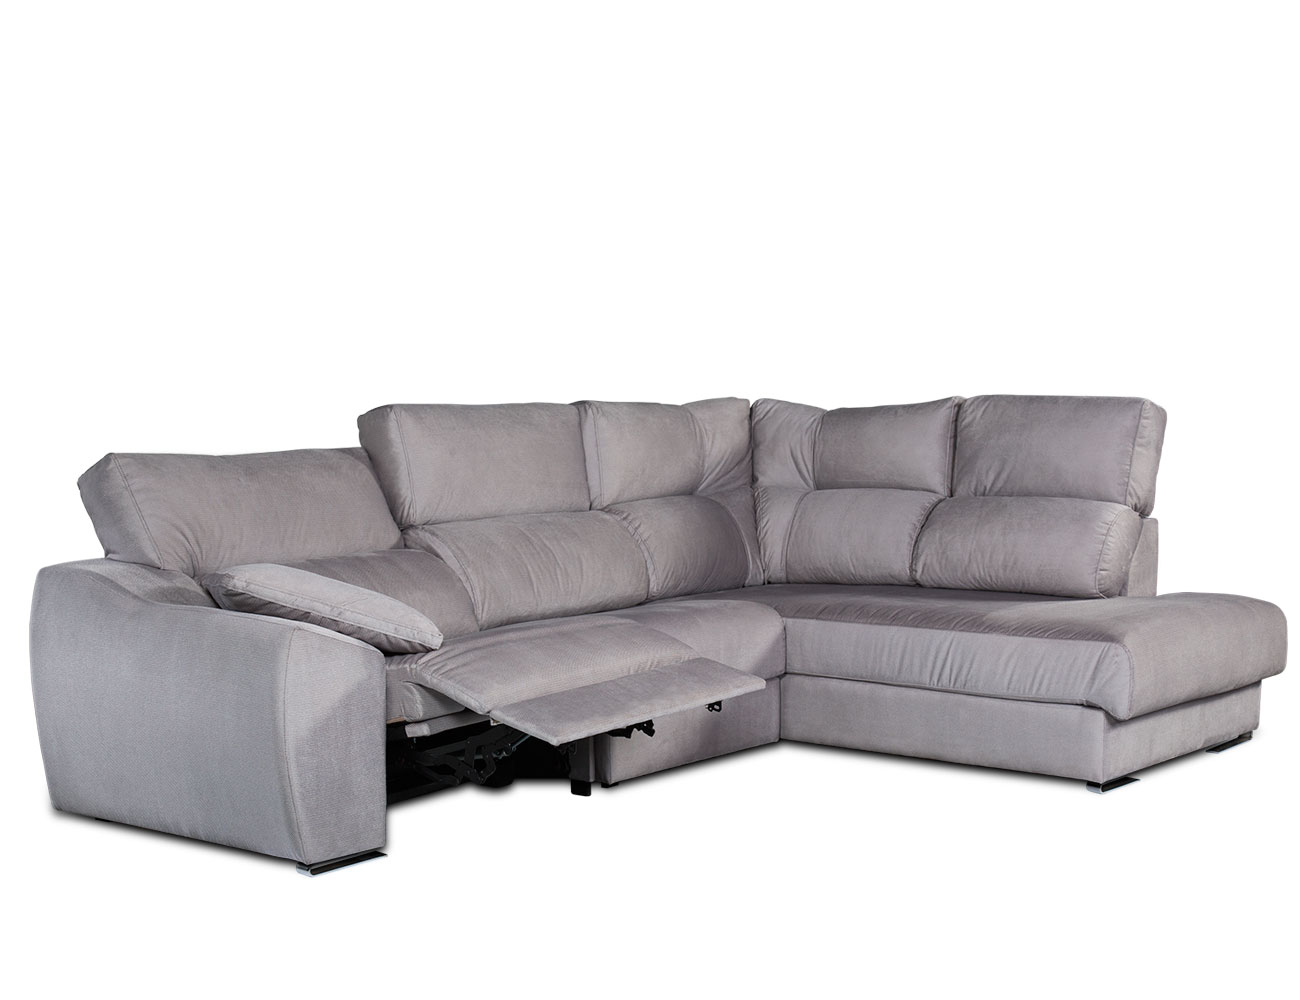 Sofa chaiselongue rincon electrico 210